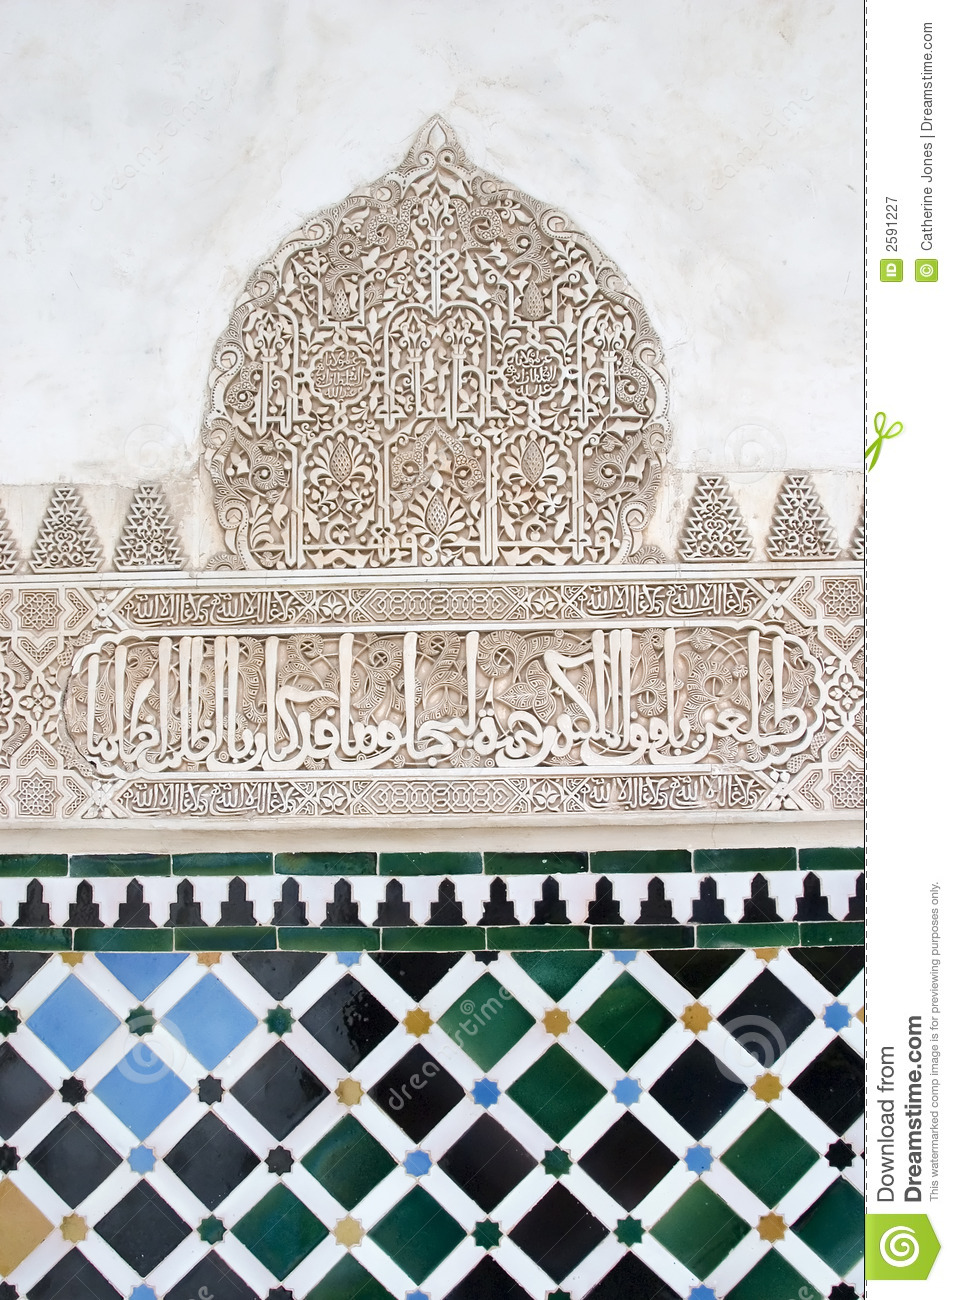 Islamic Art And Architecture Royalty Free Stock Photography ...